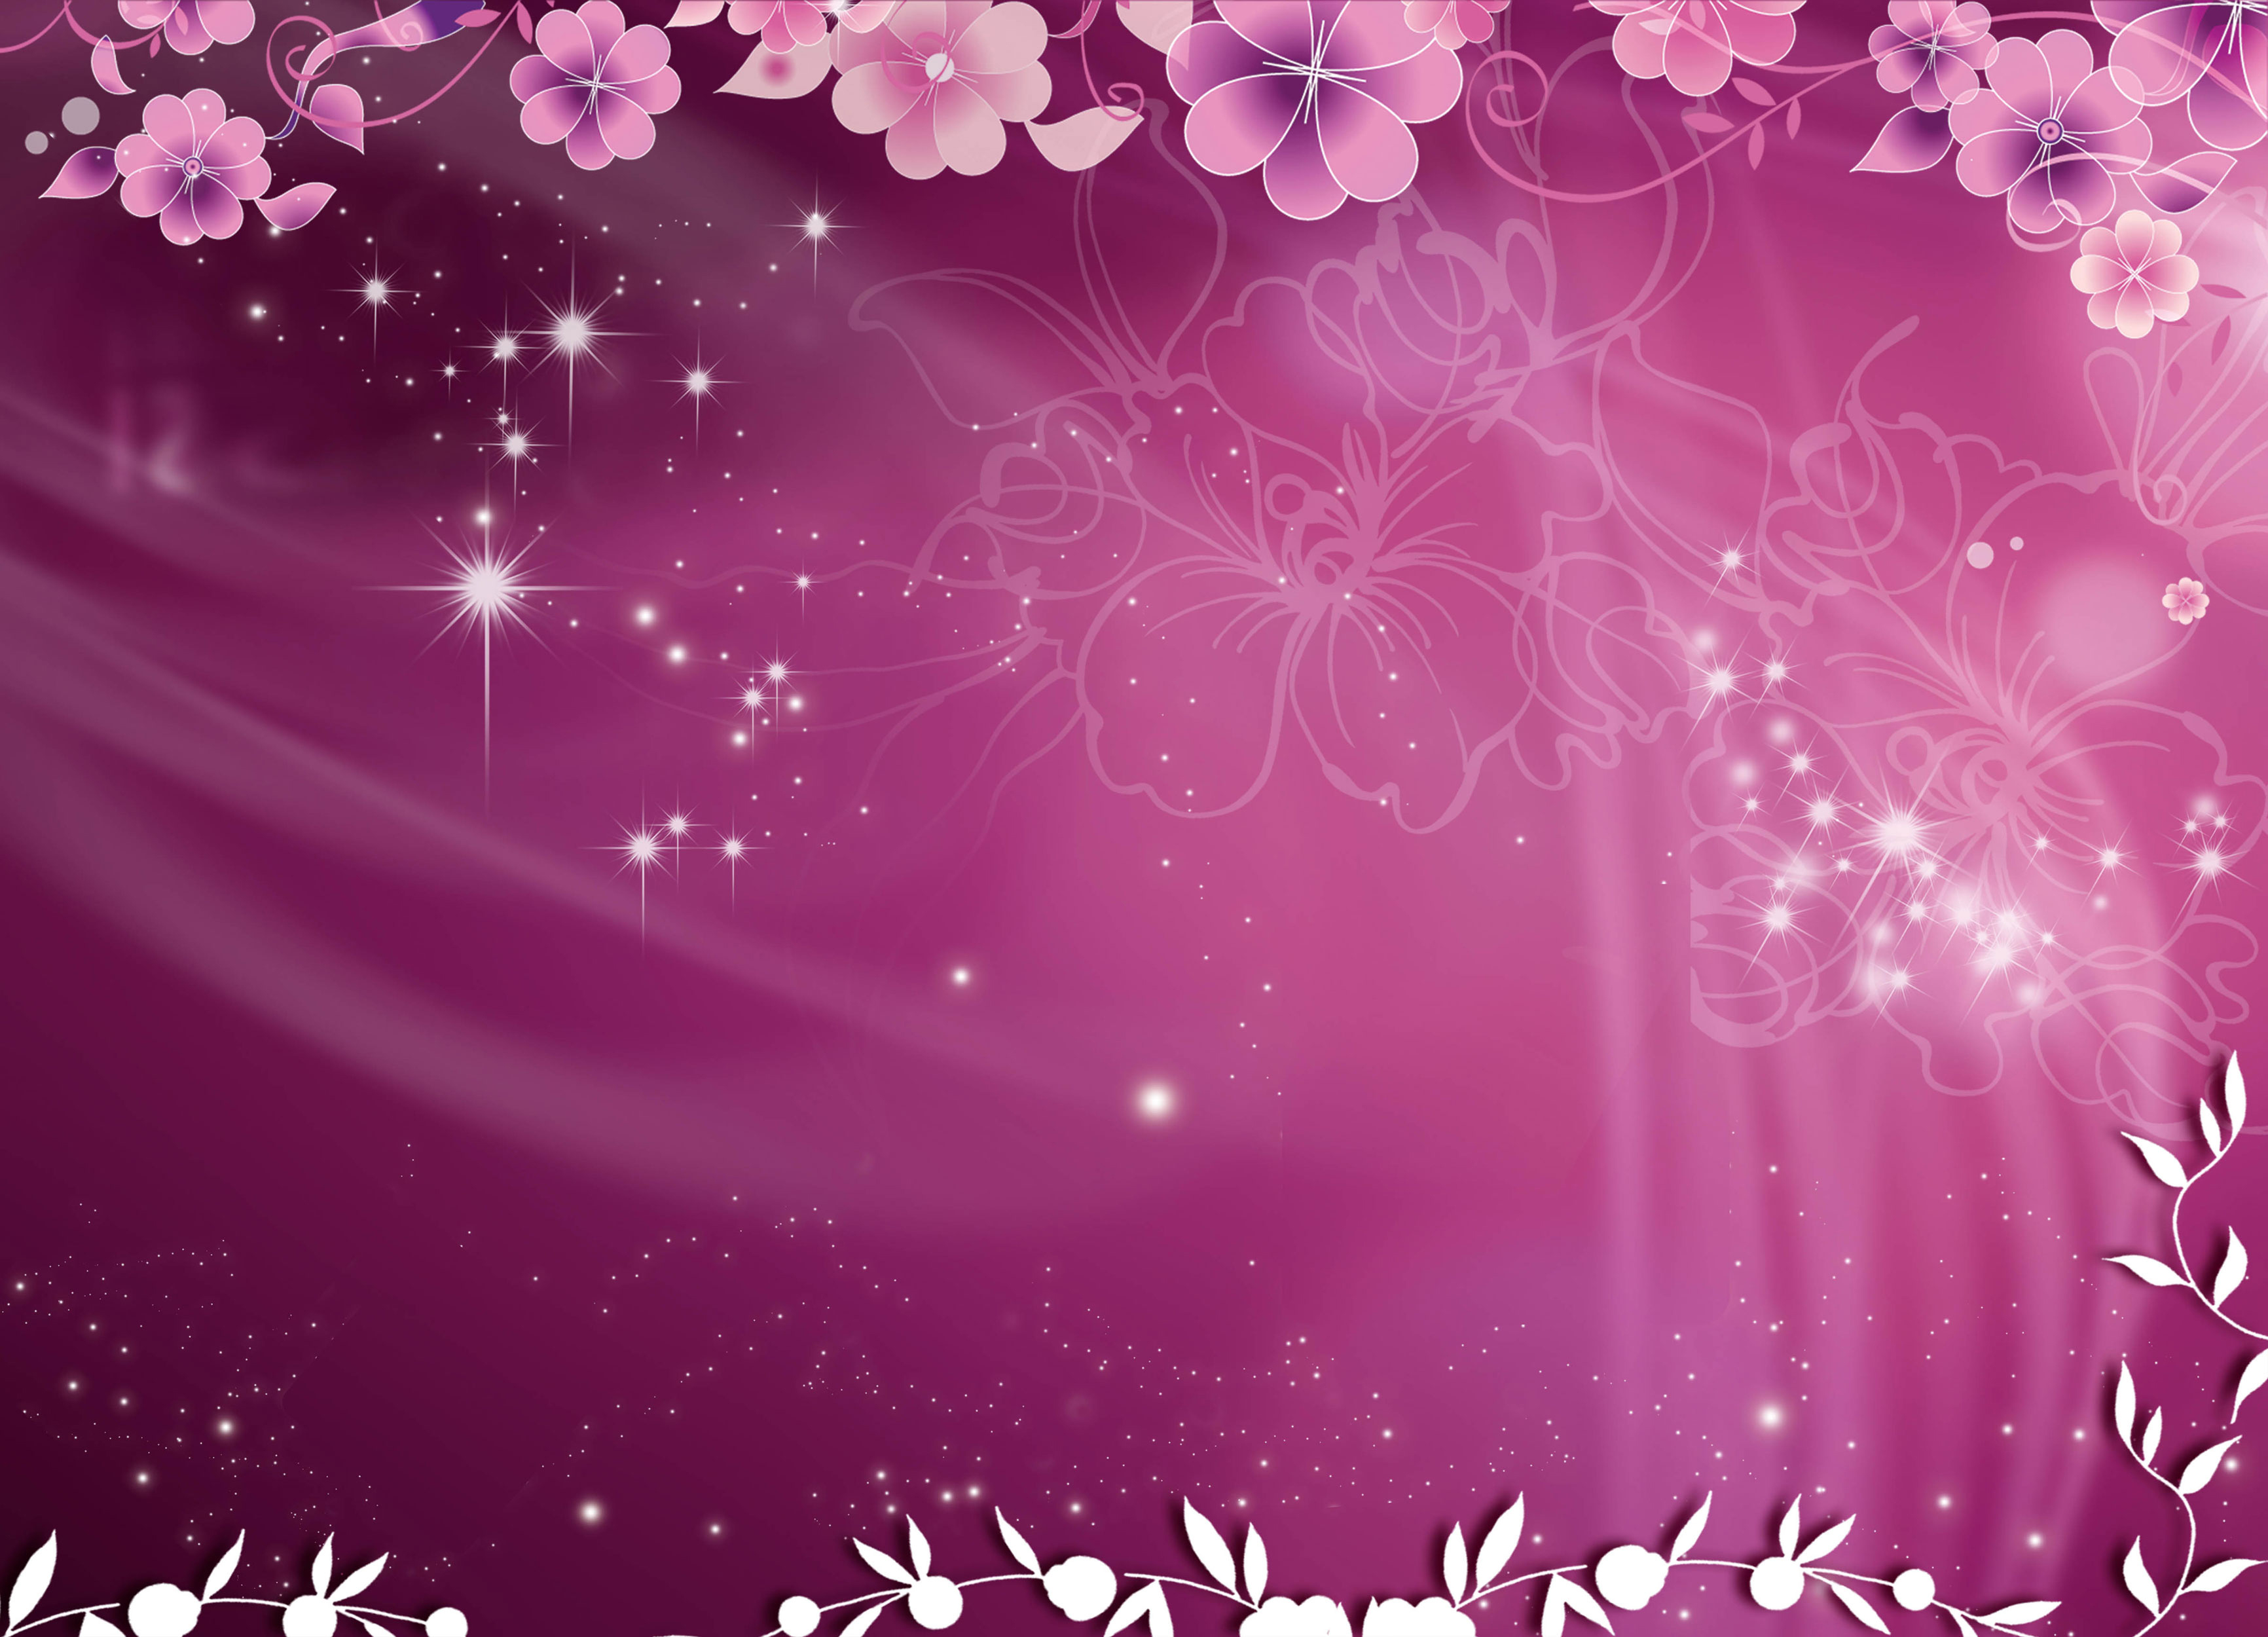 Flower PowerPoint Templates and Backgrounds for Your